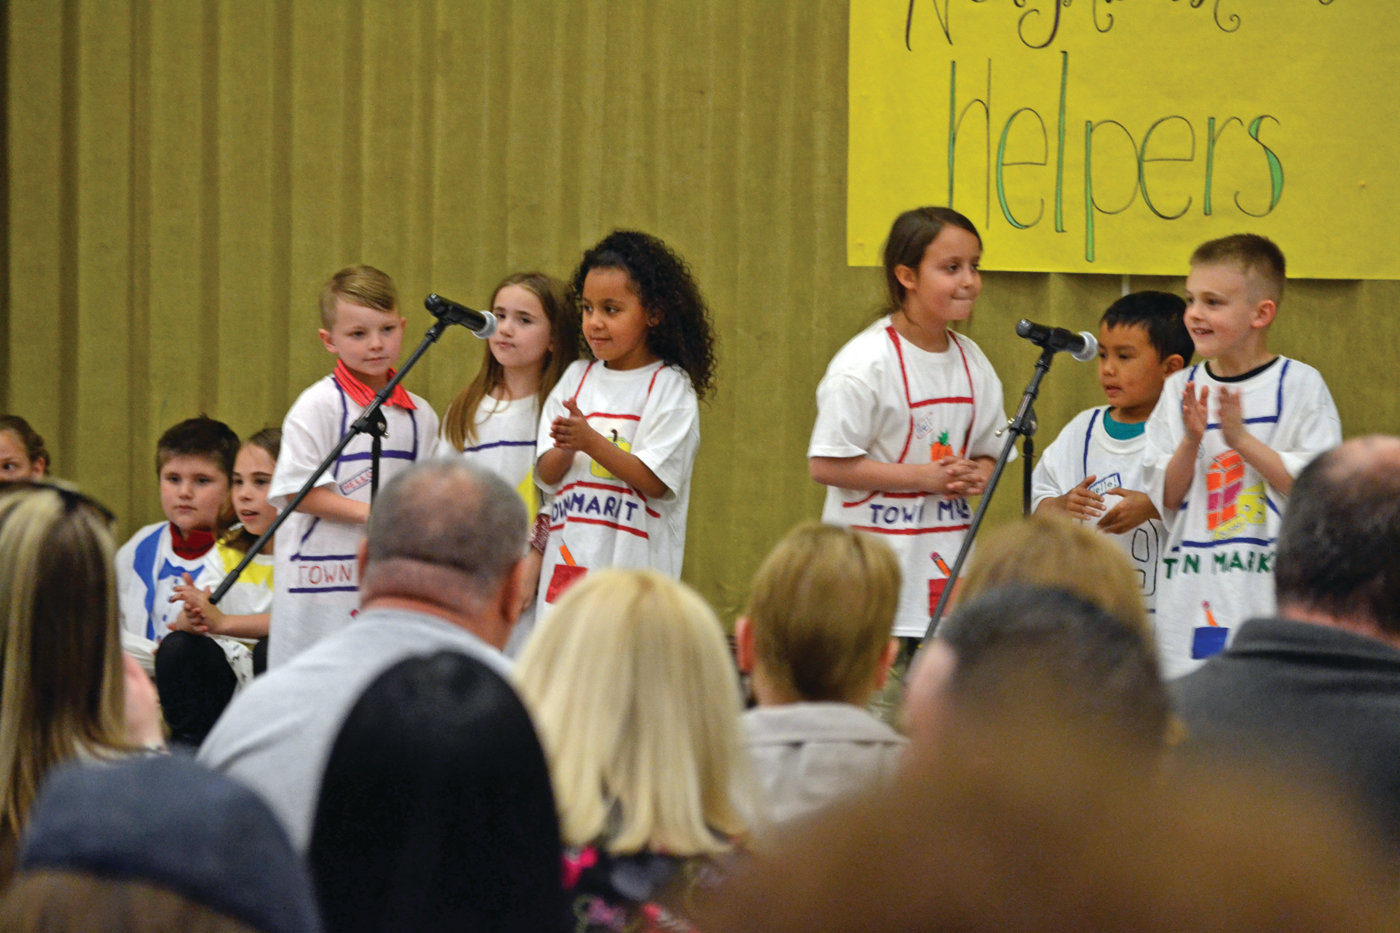 GOOD APPLES: Hoxsie first grade students, left to right, Adam James, Destiny Griffin, Maiya Gonzalez, Alicia Nichols, Jacob Kue and Brayden Arnold, portray grocery store workers in their song.